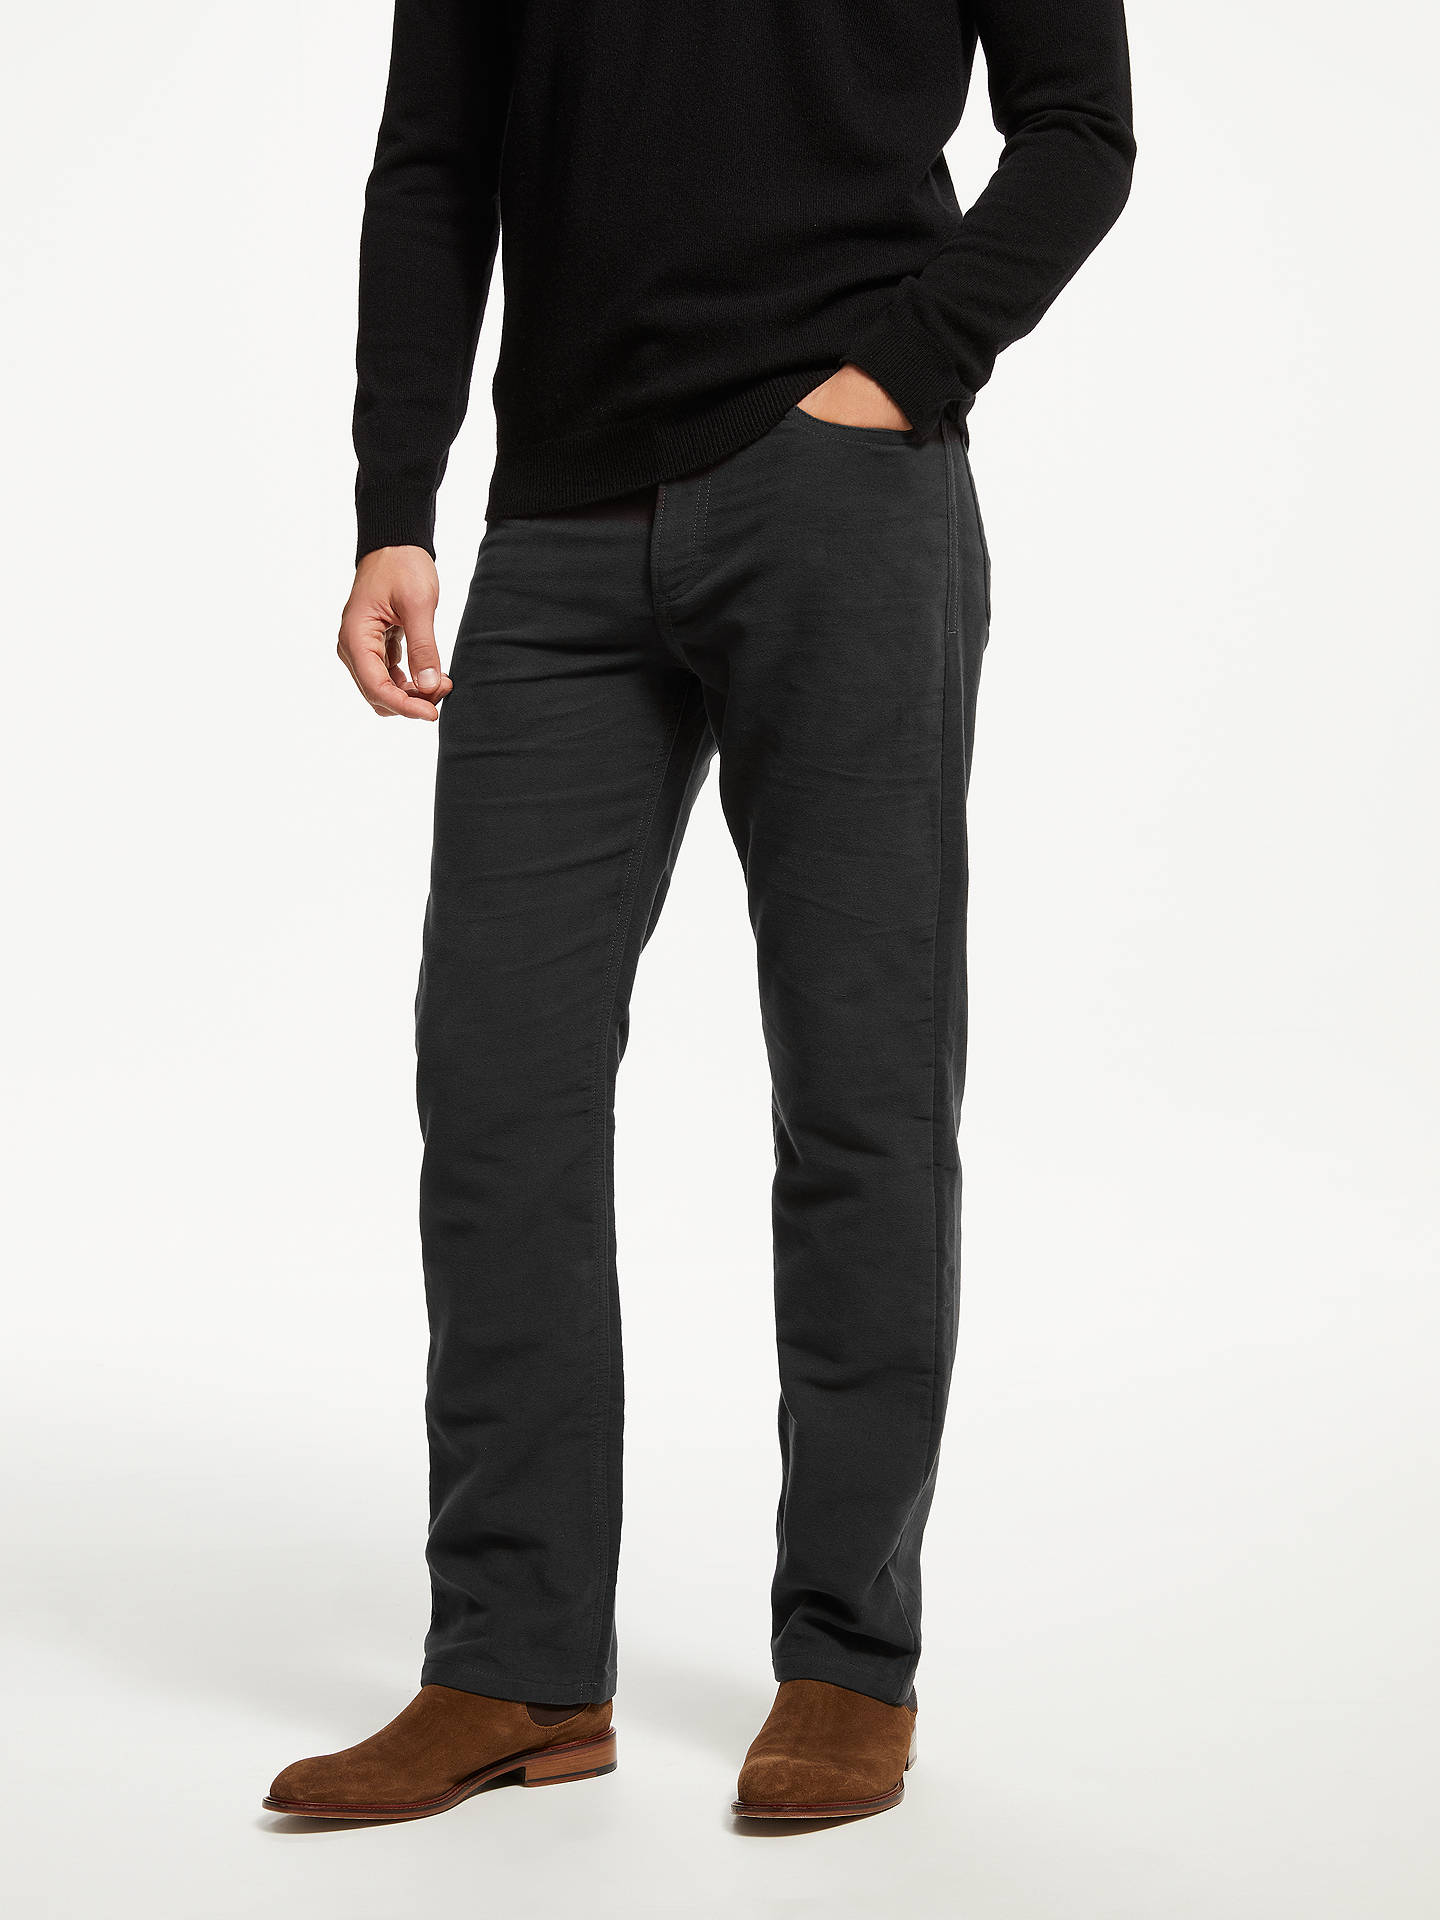 BuyJohn Lewis & Partners Cotton Moleskin Trousers, Charcoal, 34R Online at johnlewis.com